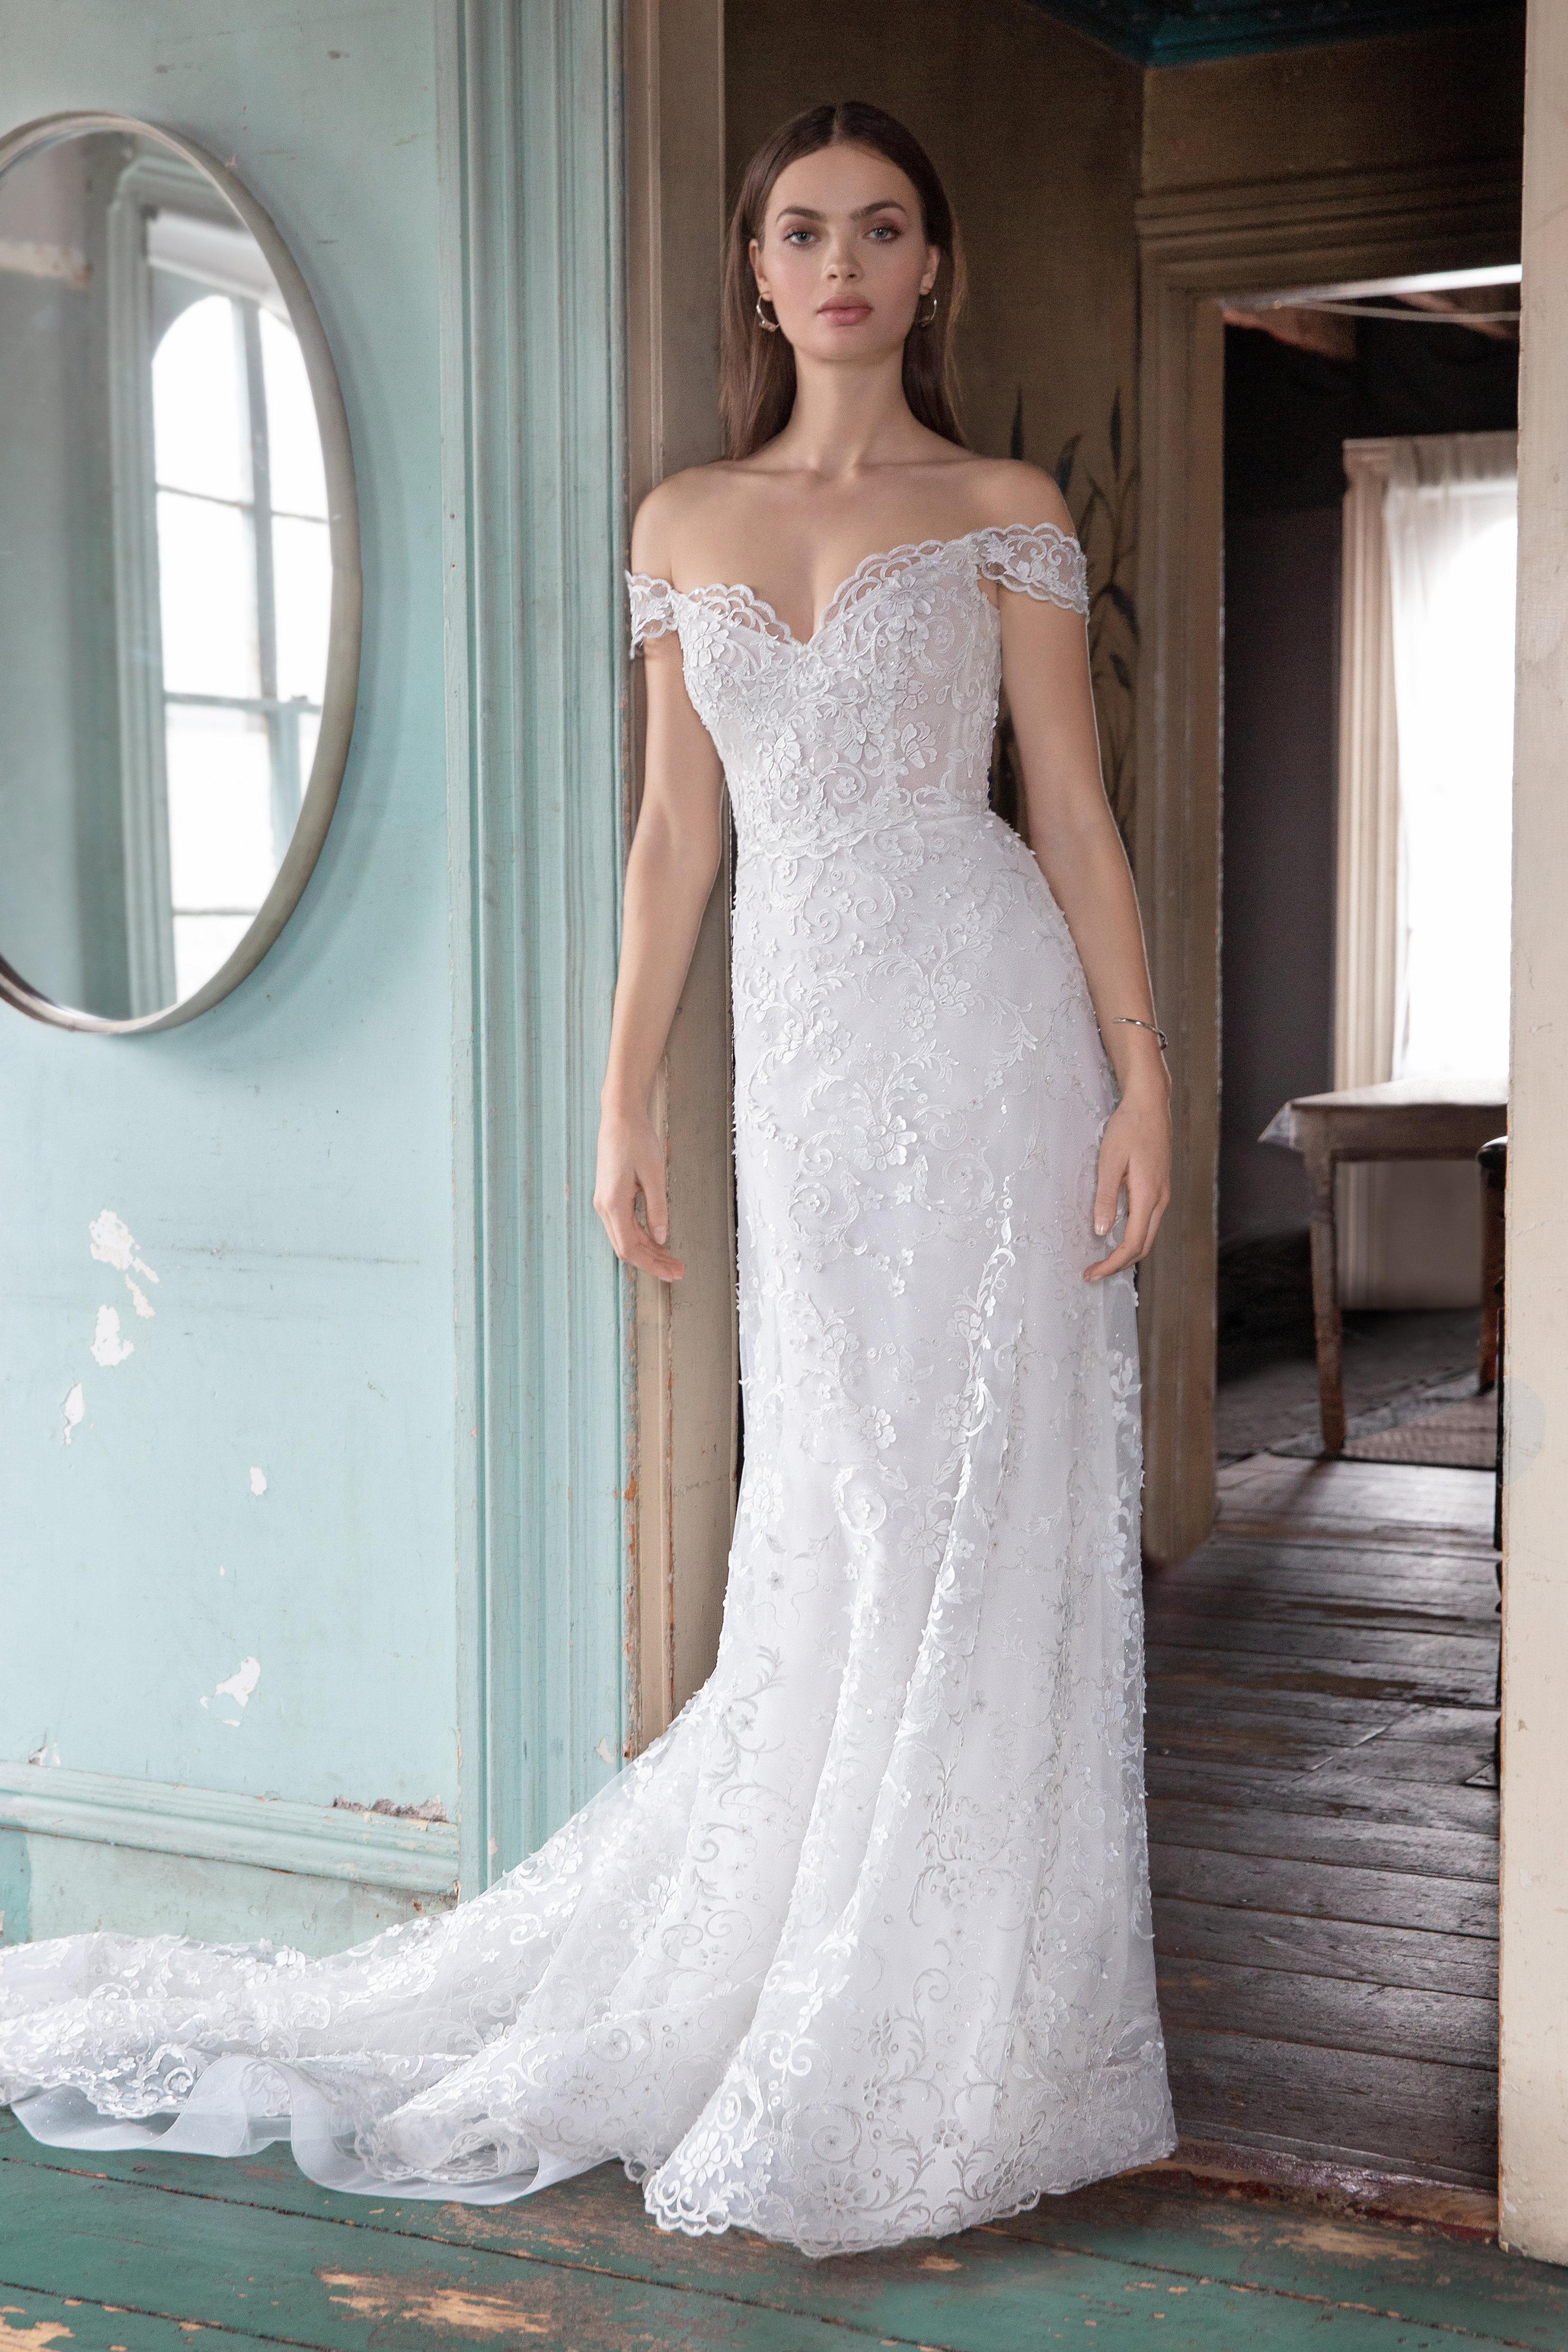 d826528109d Bridal Gowns and Wedding Dresses by JLM Couture - Style 3906 Bea